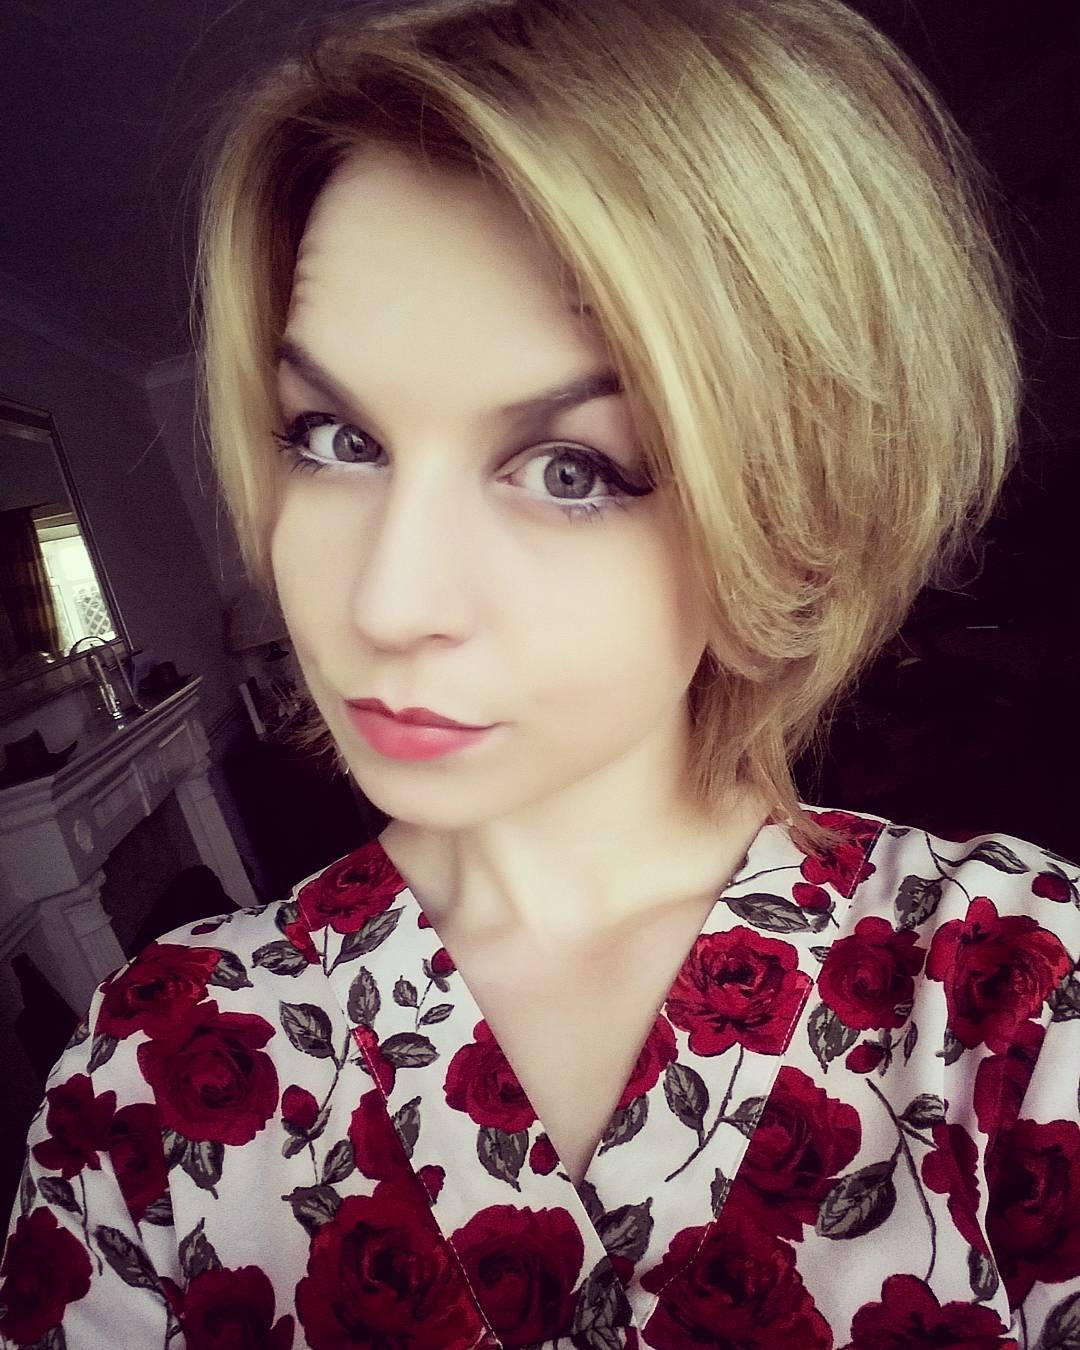 Edgy Pixie Bob Haircut For Girls